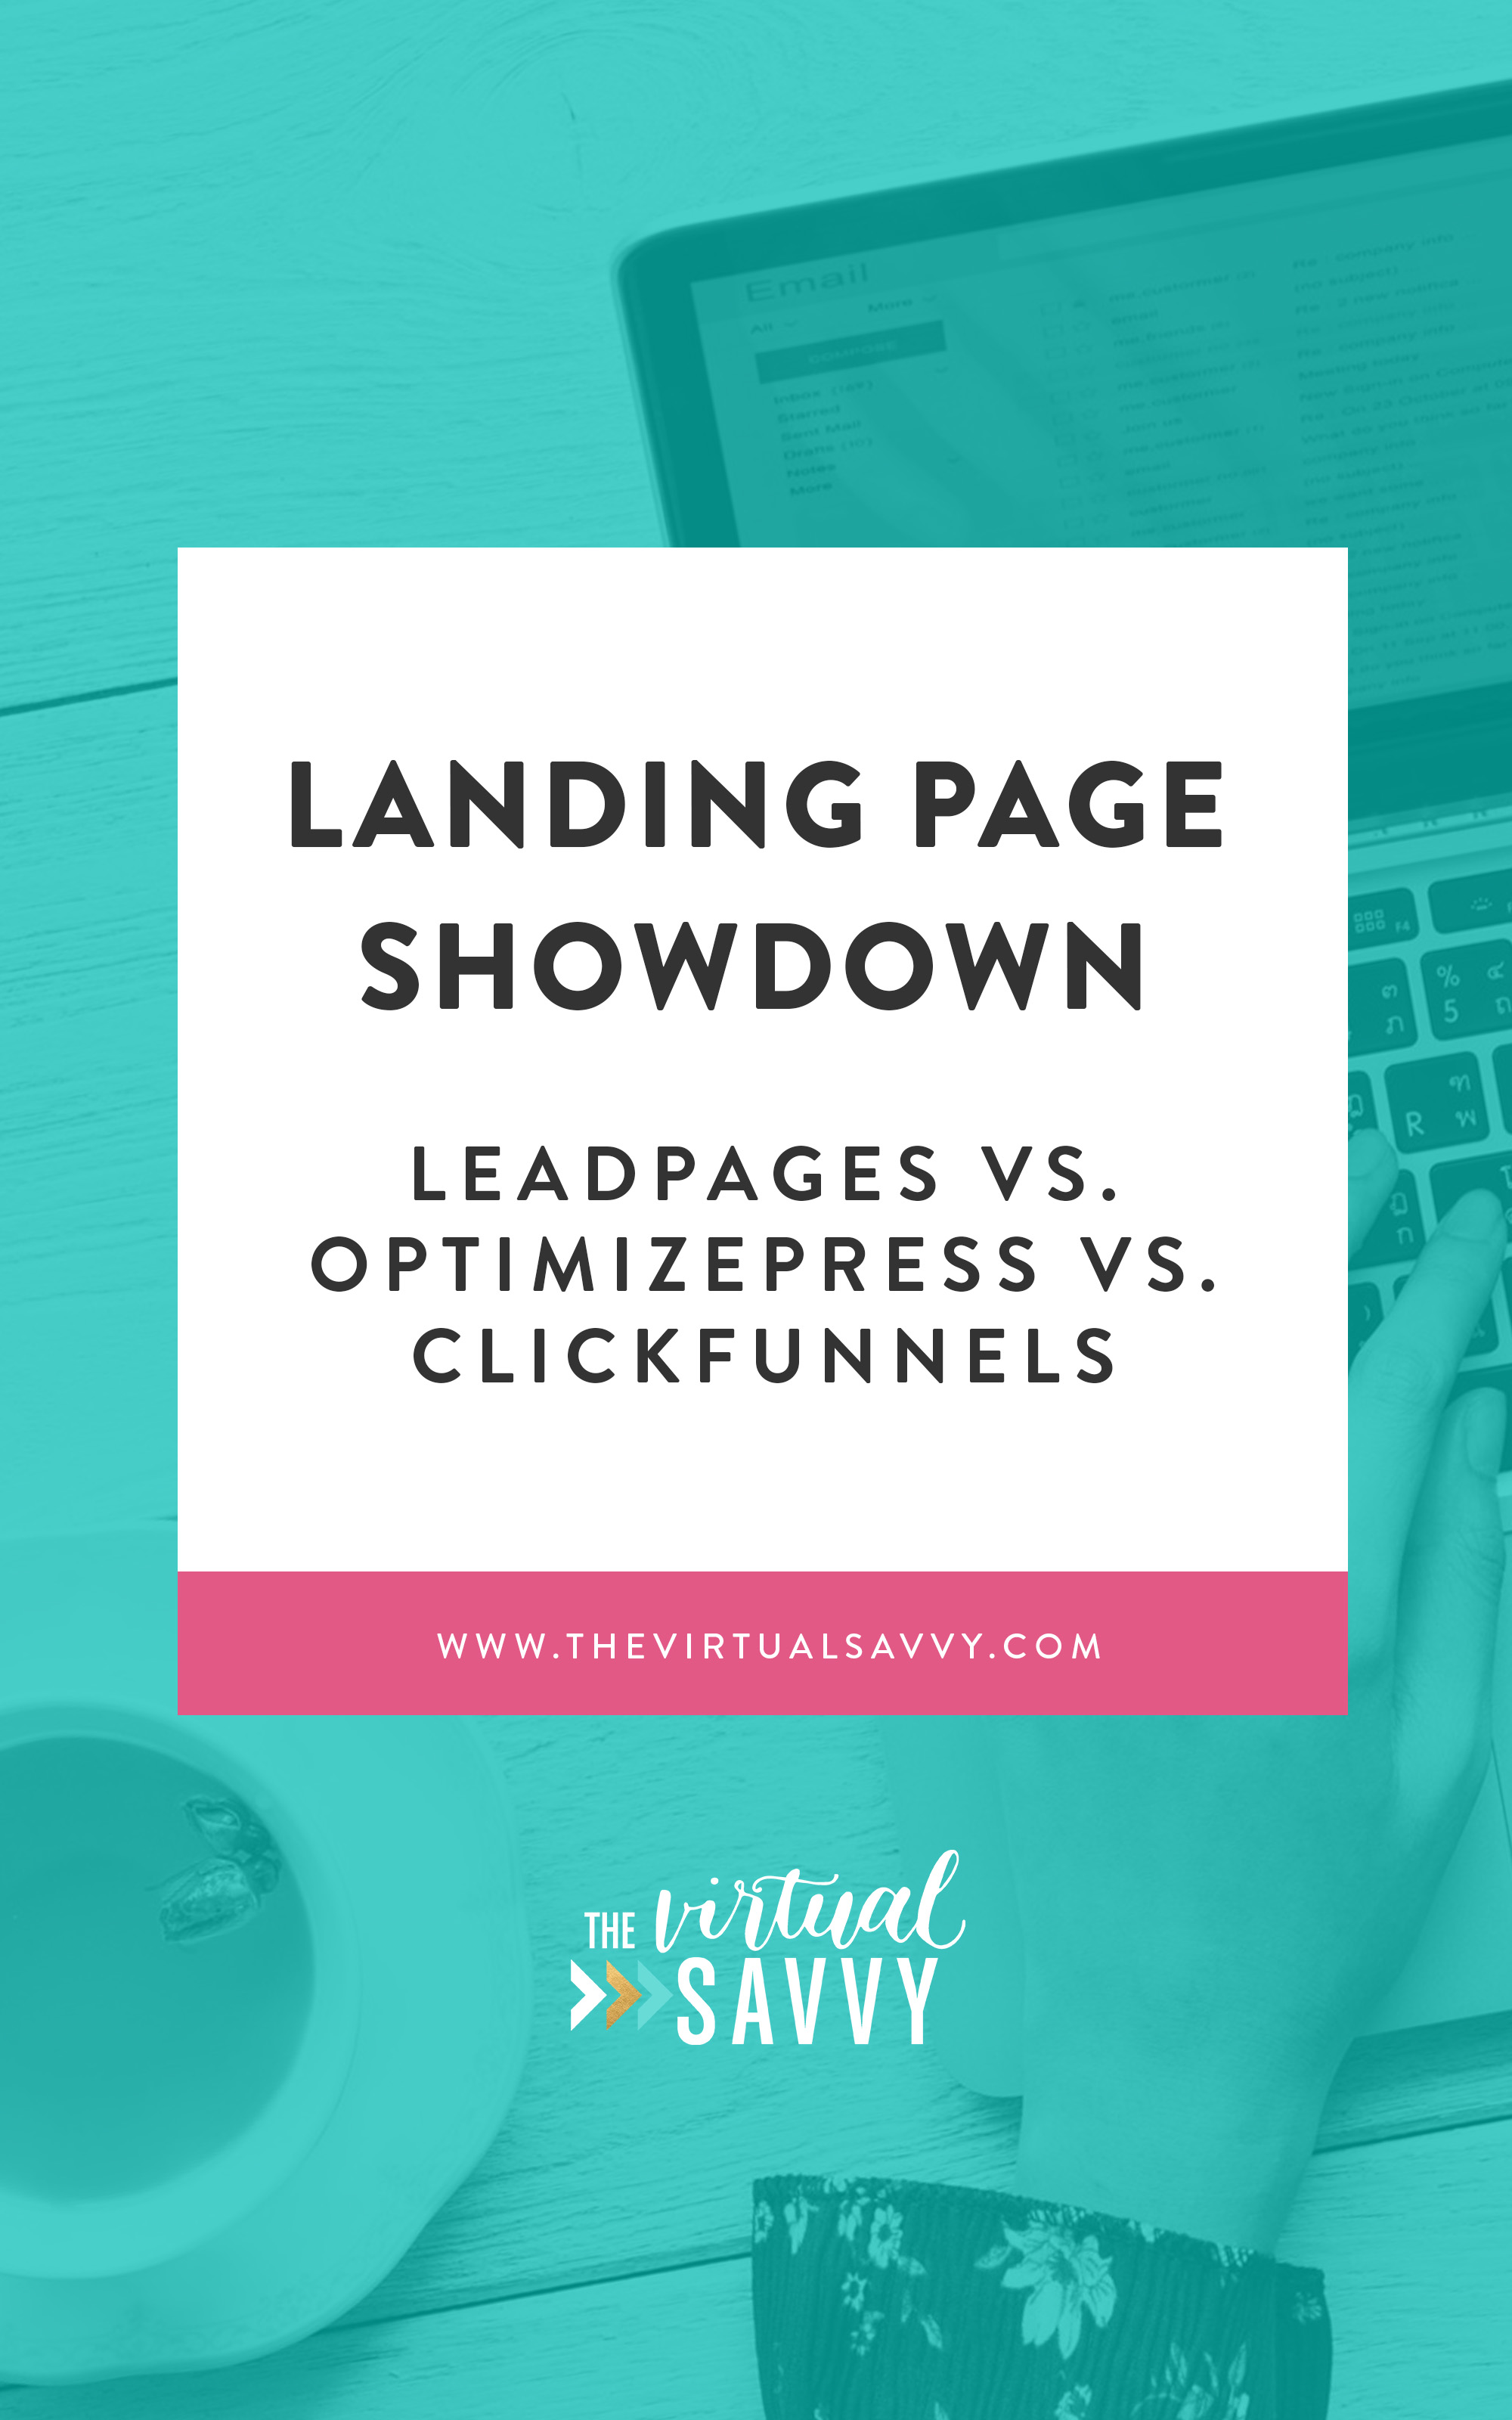 the virtual savvylanding page showdown leadpages vs optimizepress vs clickfunnels